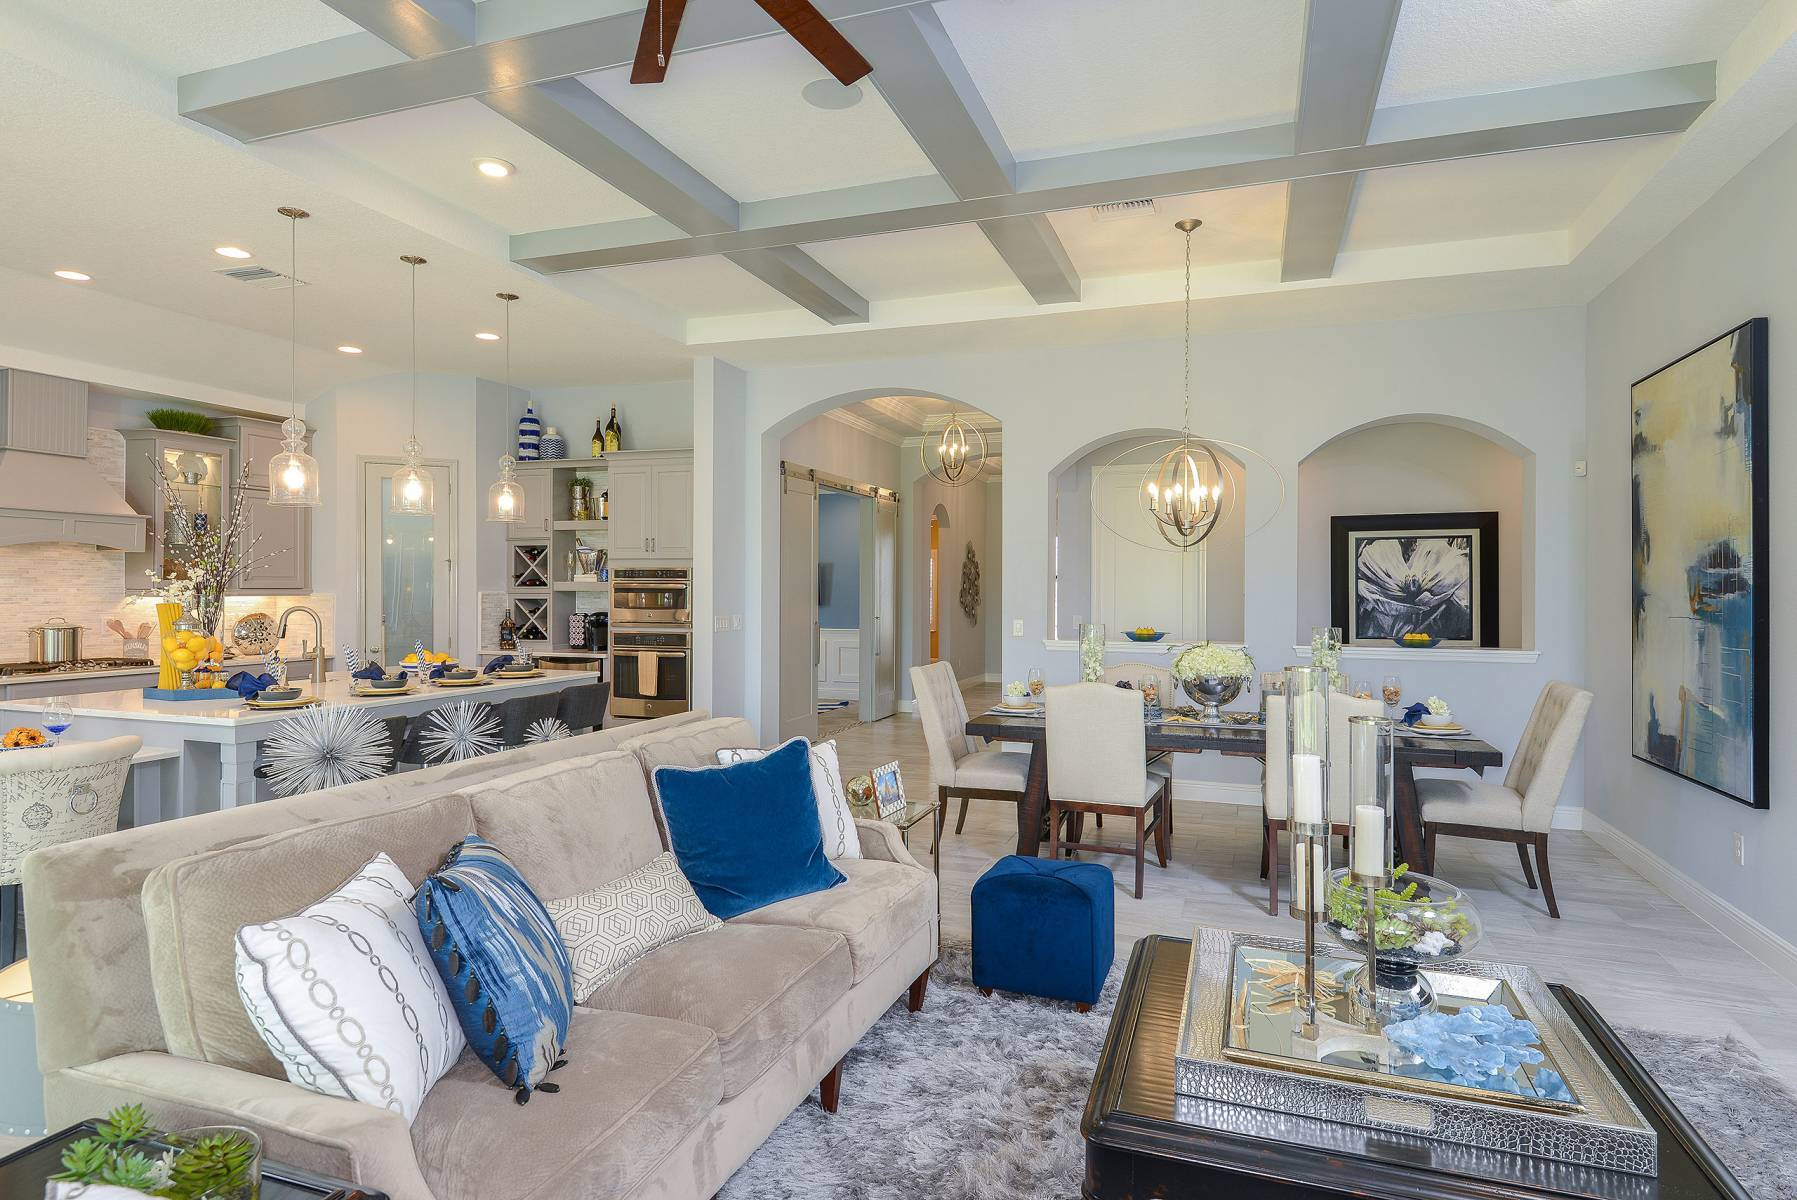 Living Area featured in the Bayshore I By Homes by WestBay in Tampa-St. Petersburg, FL